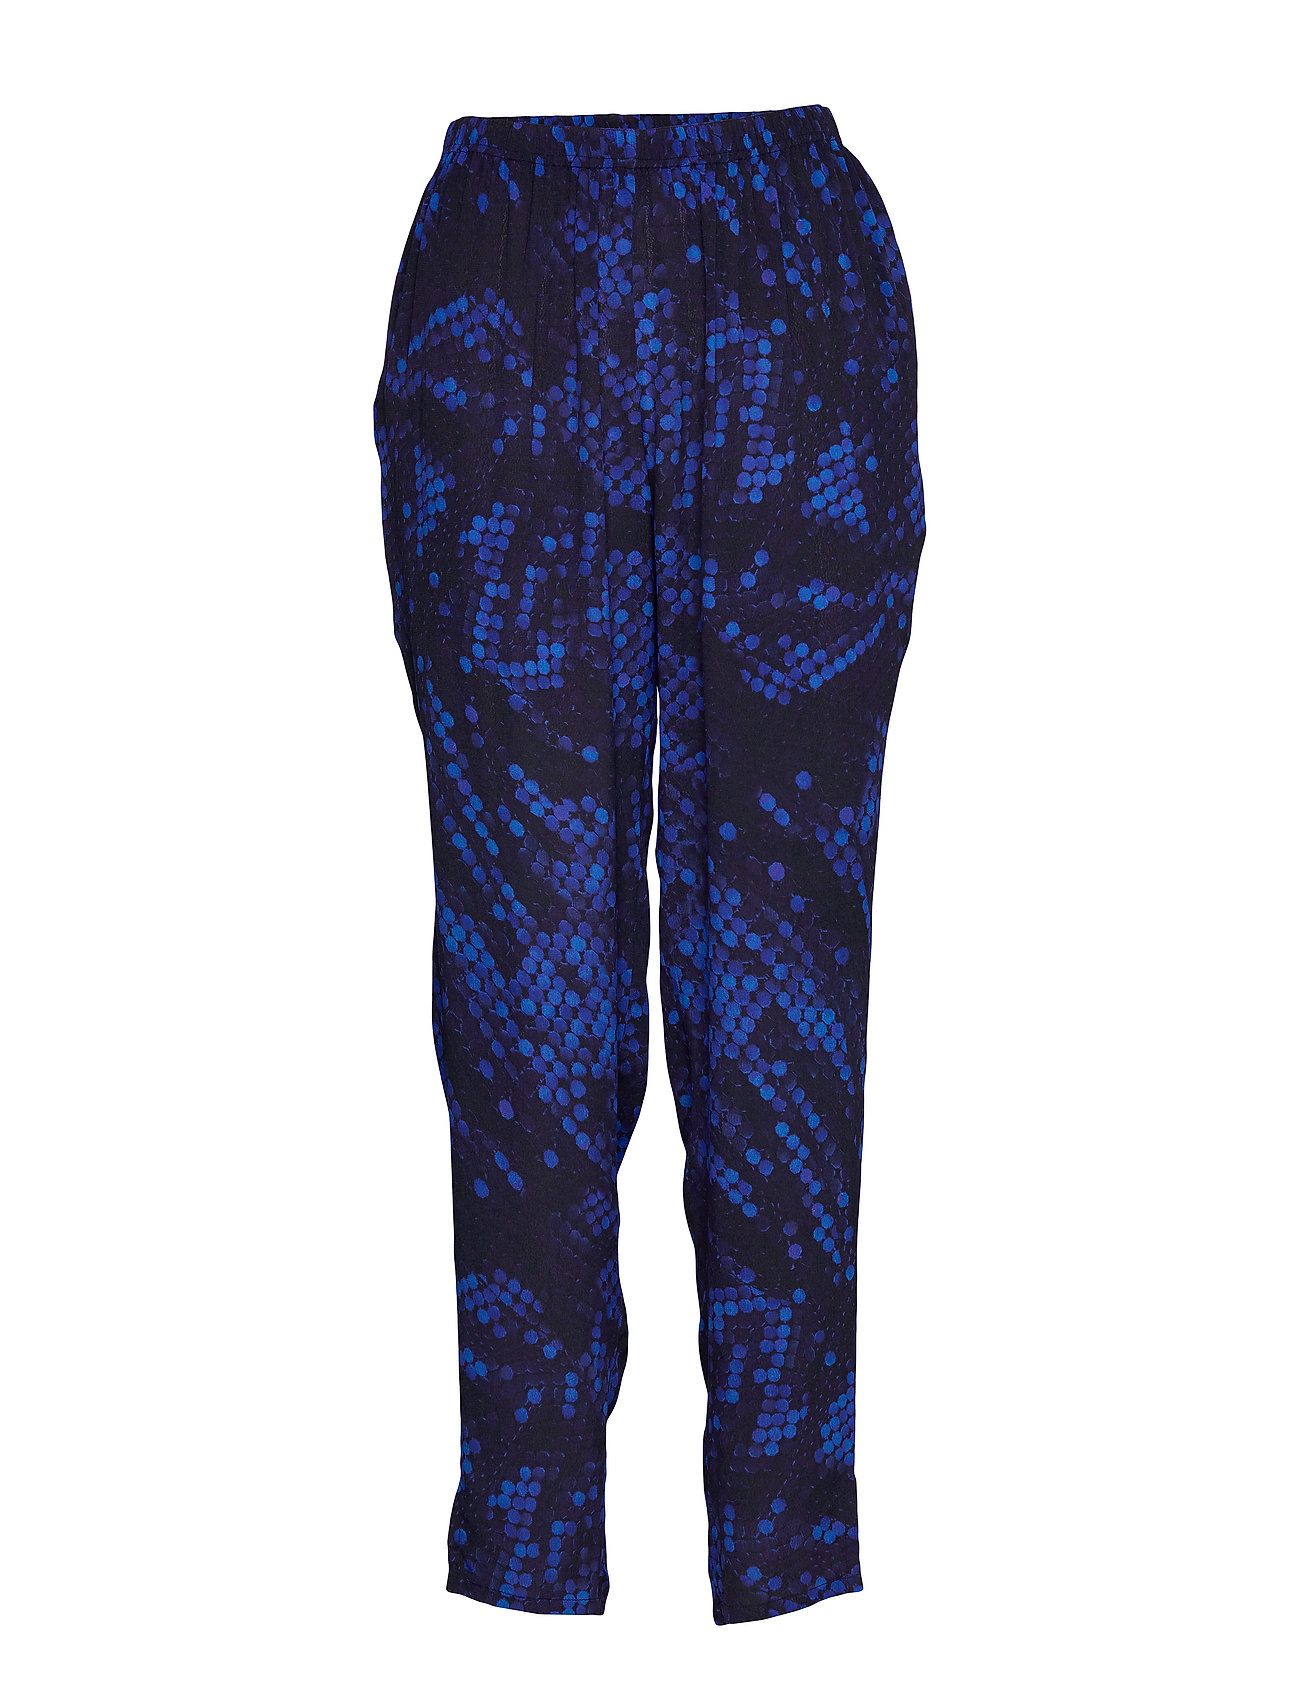 Diana Orving Trousers - BLUE